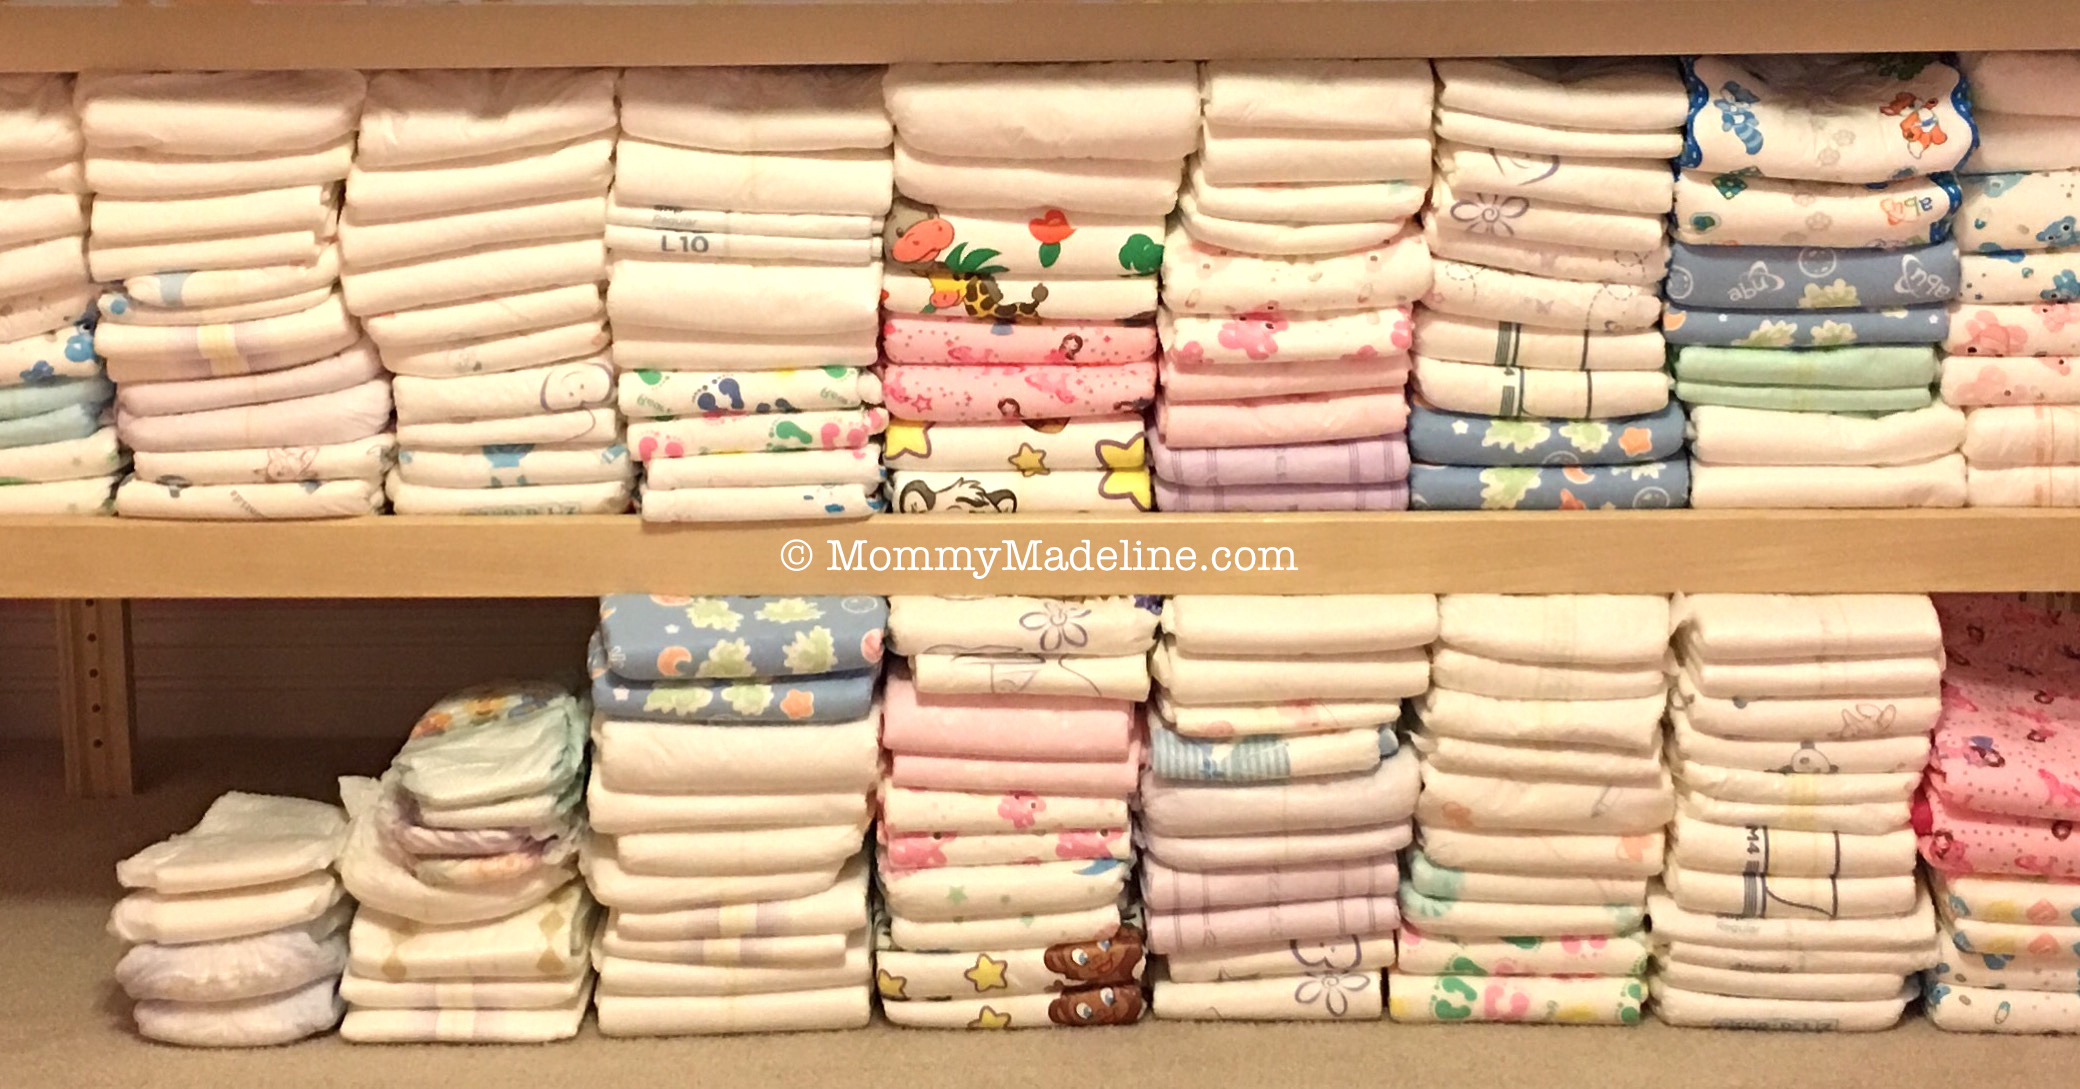 A Few Diapers